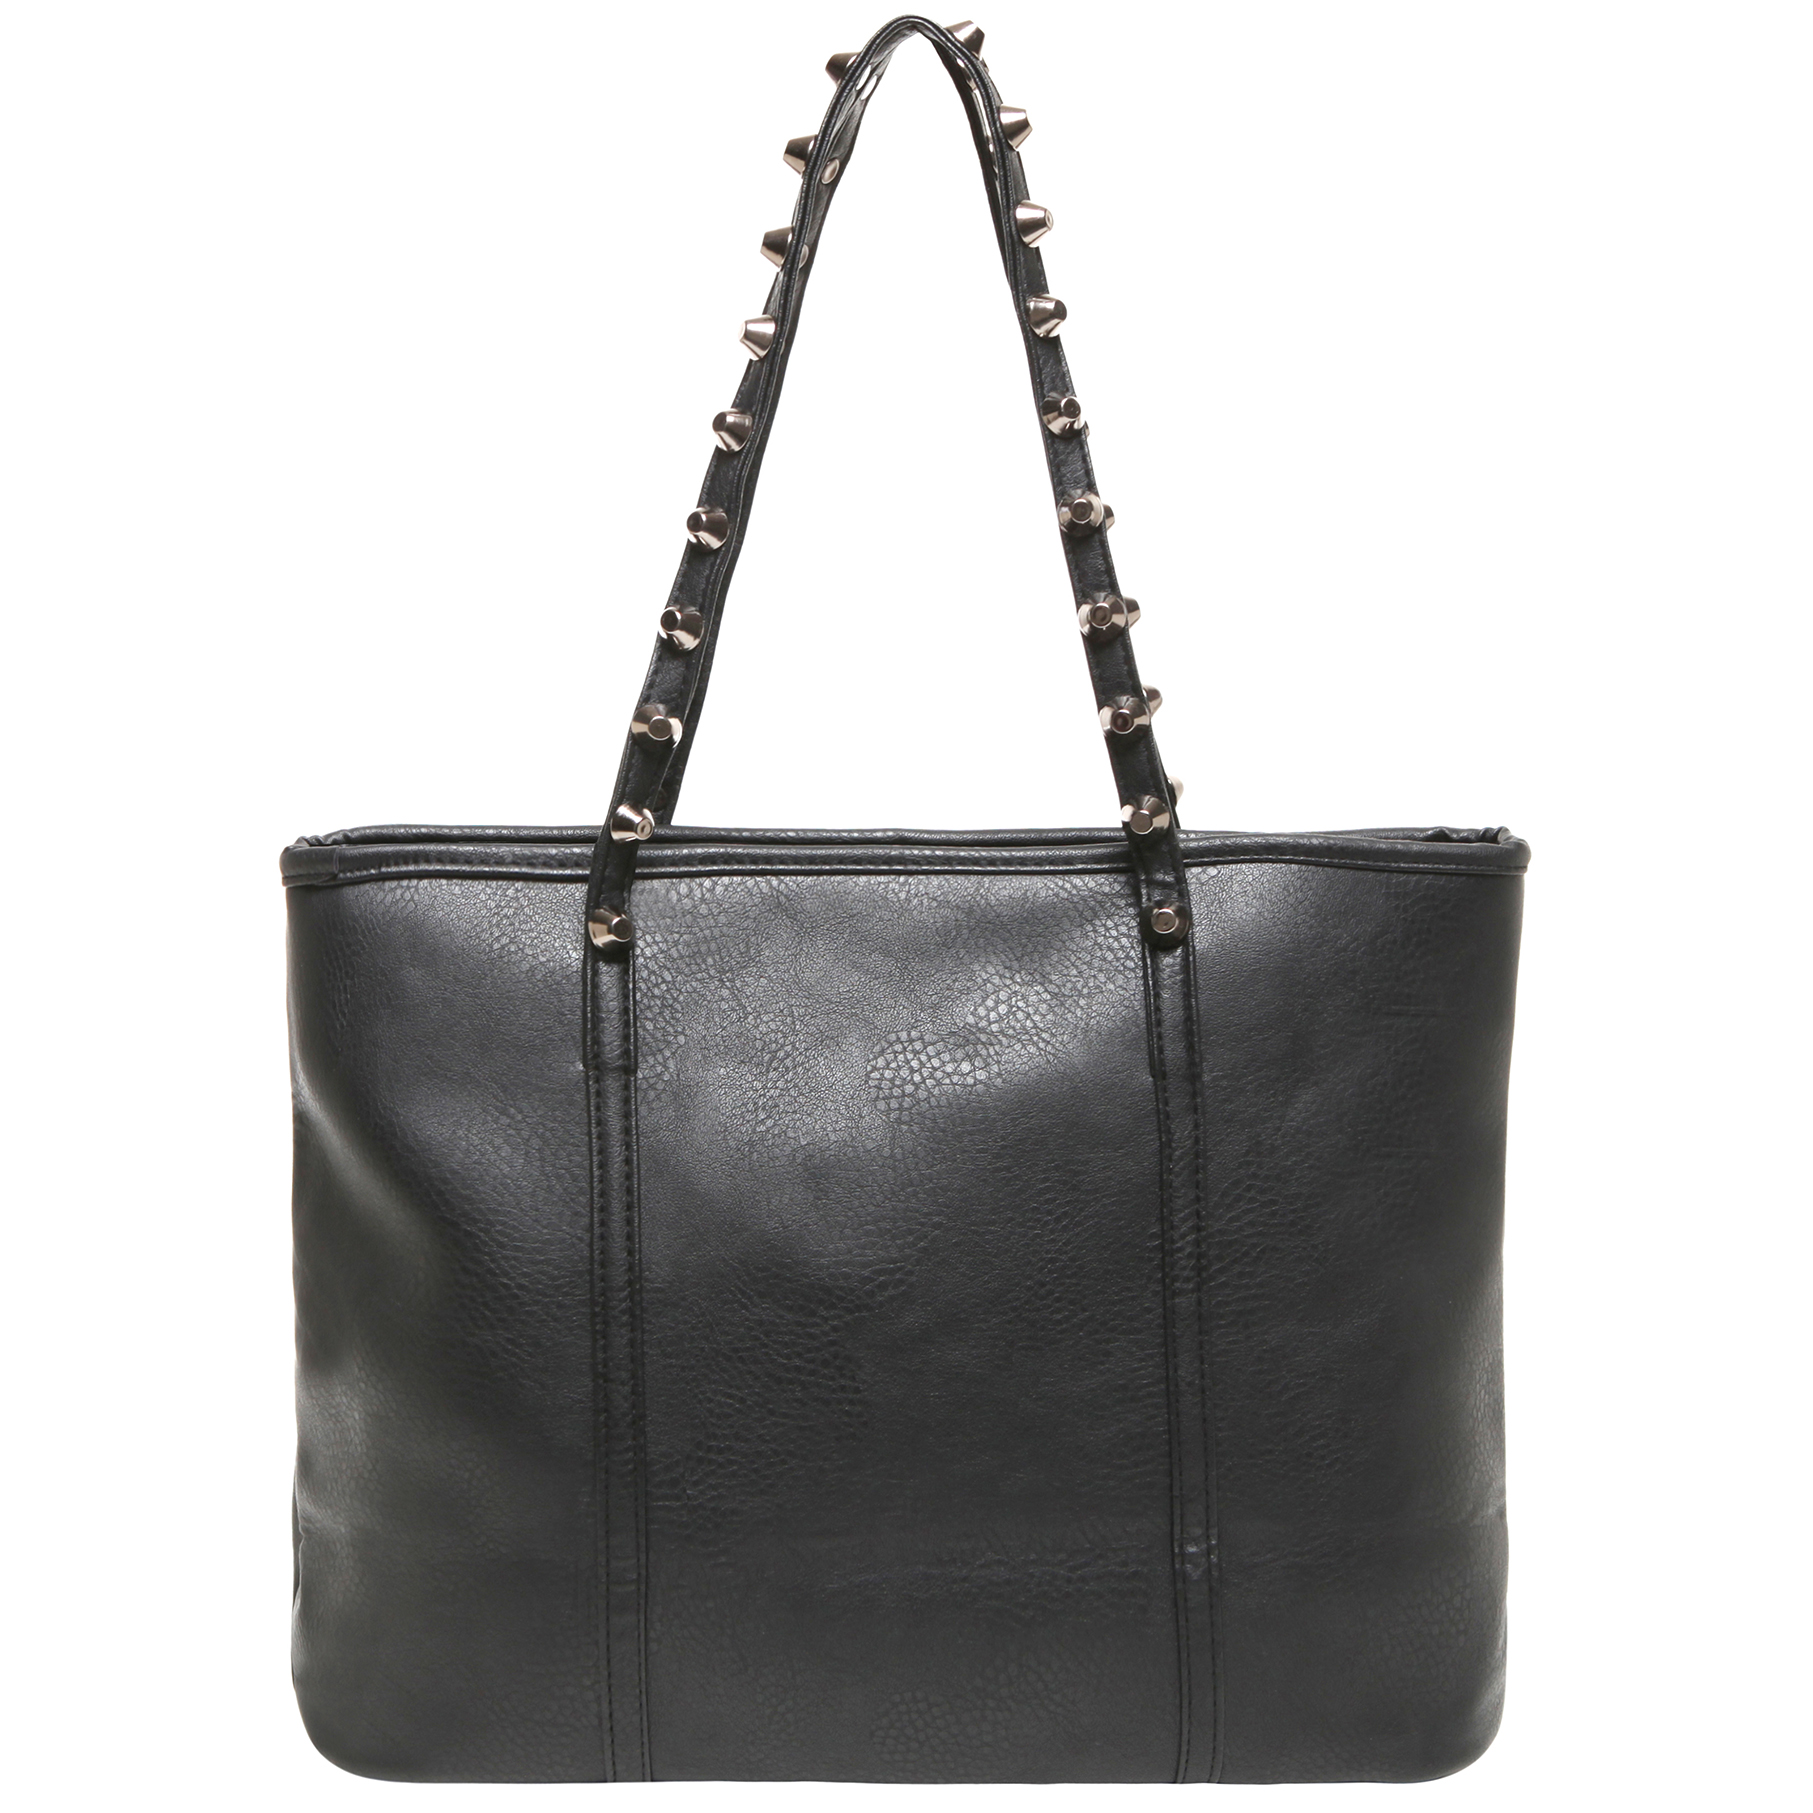 ALDA Black Studded Shopper Tote Purse Back